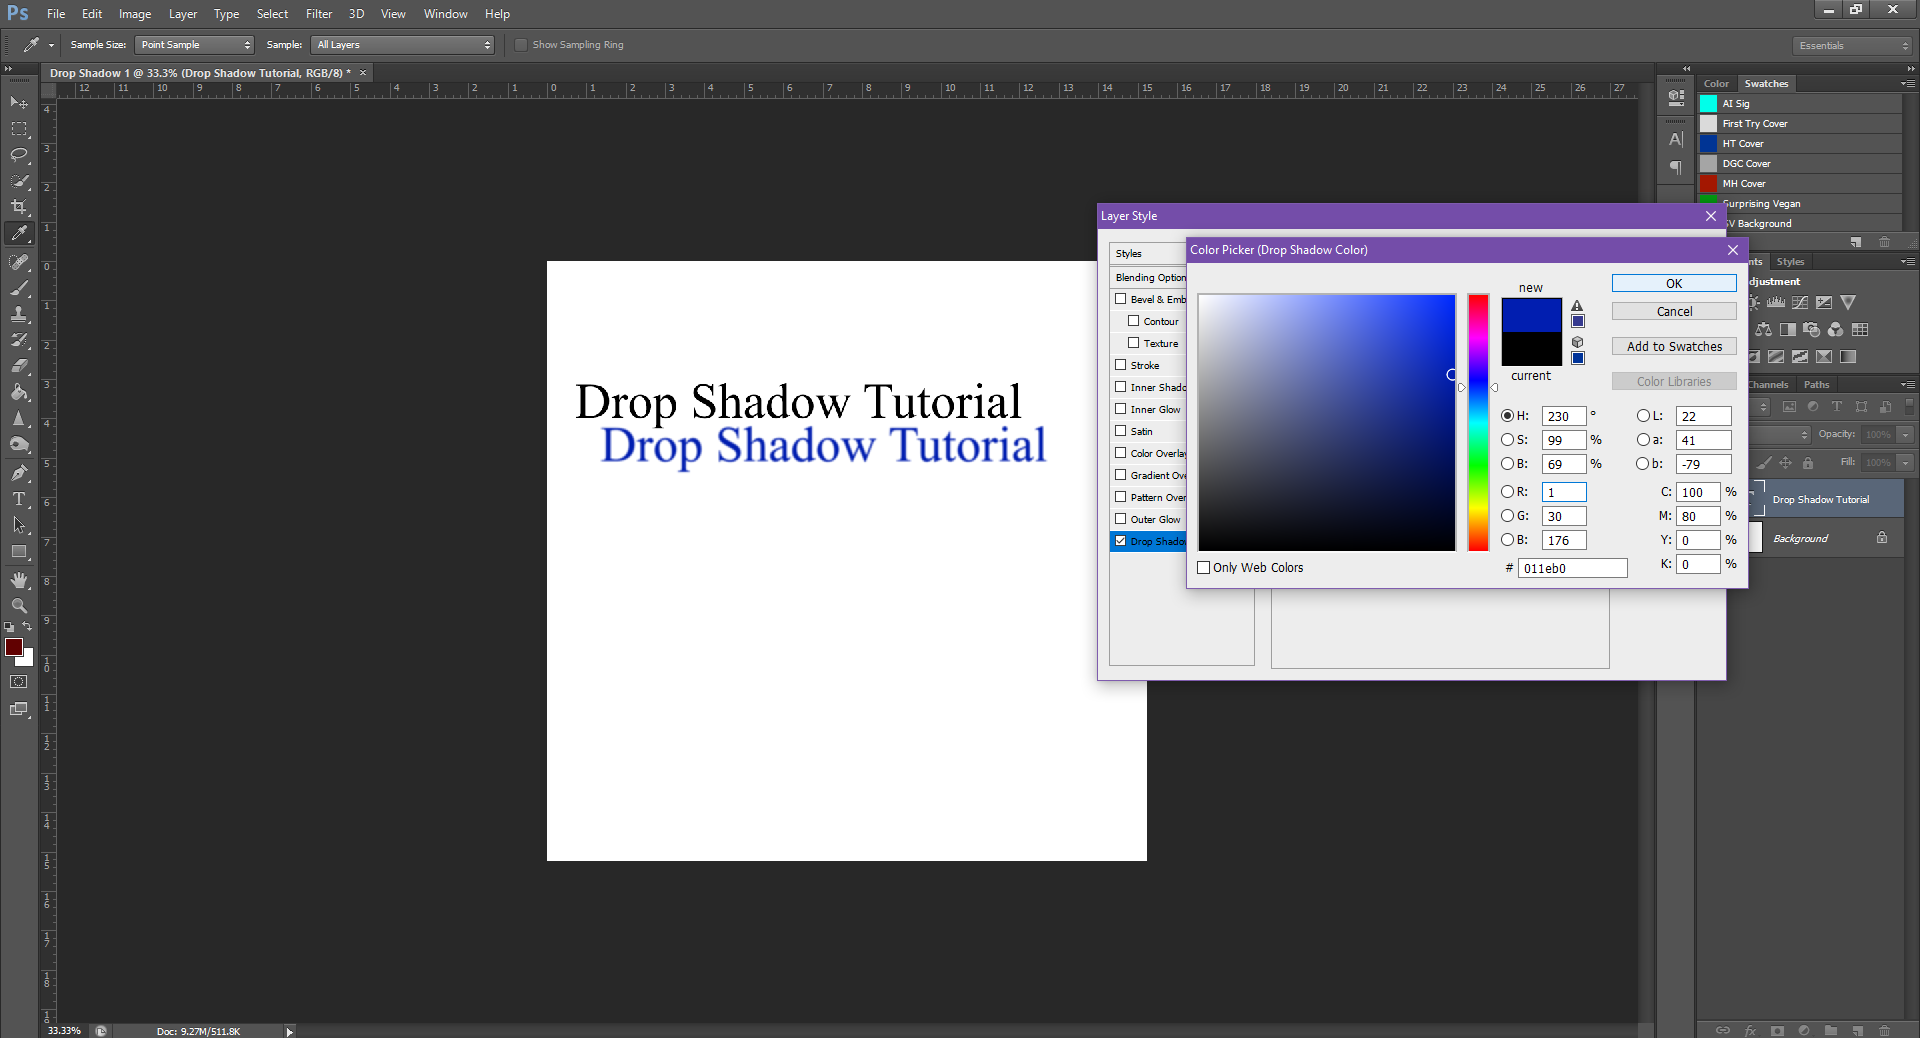 AterImber.com - Writing - Writing Tips - PHSH Tutorial - Drop Shadow - Colour Change